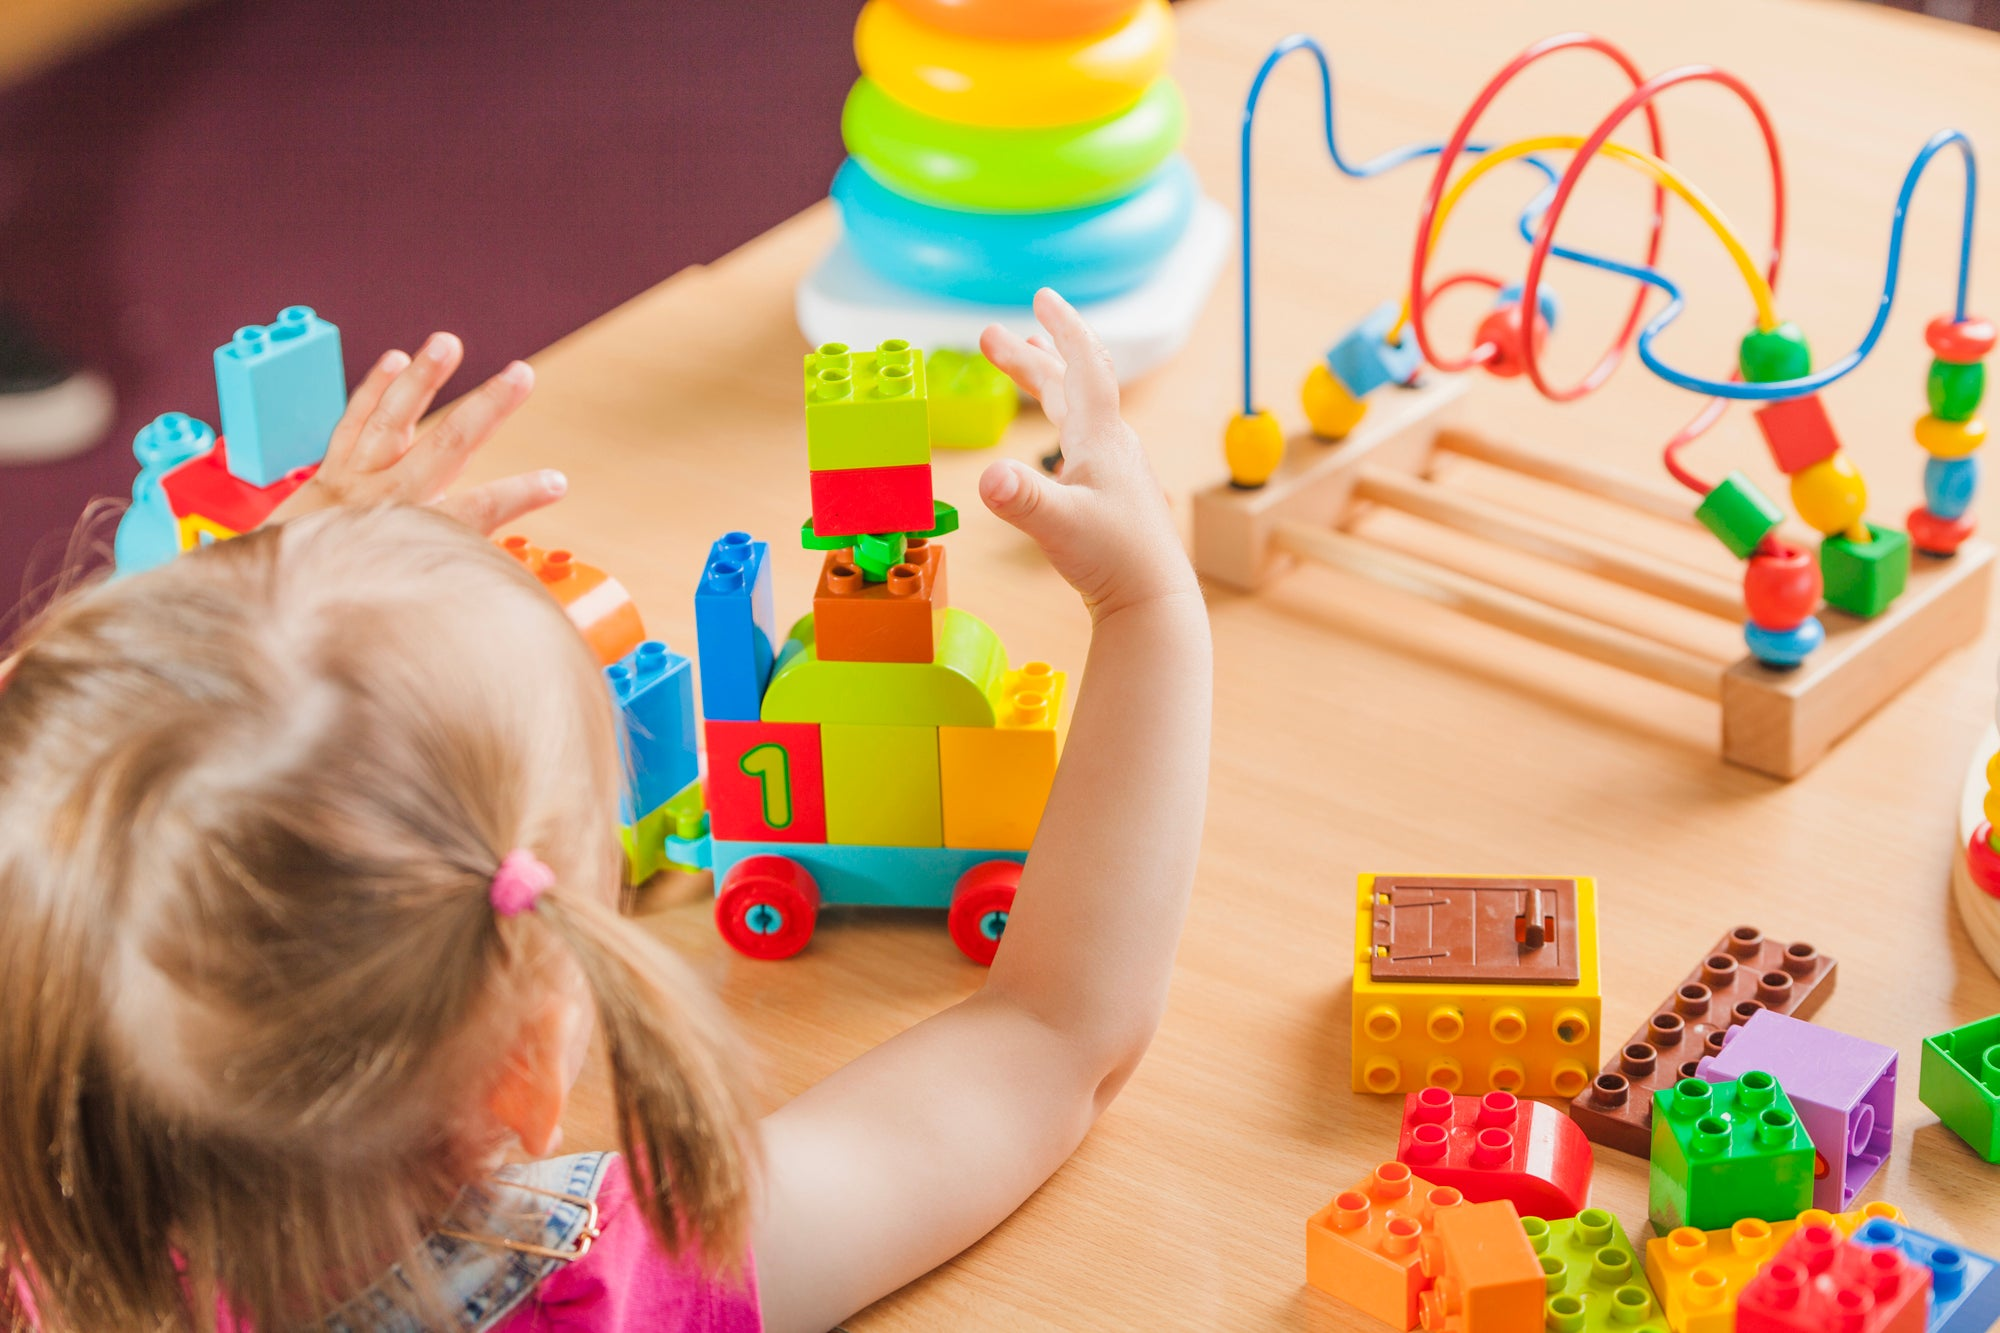 Tips for Choosing Learning Toys for Toddlers